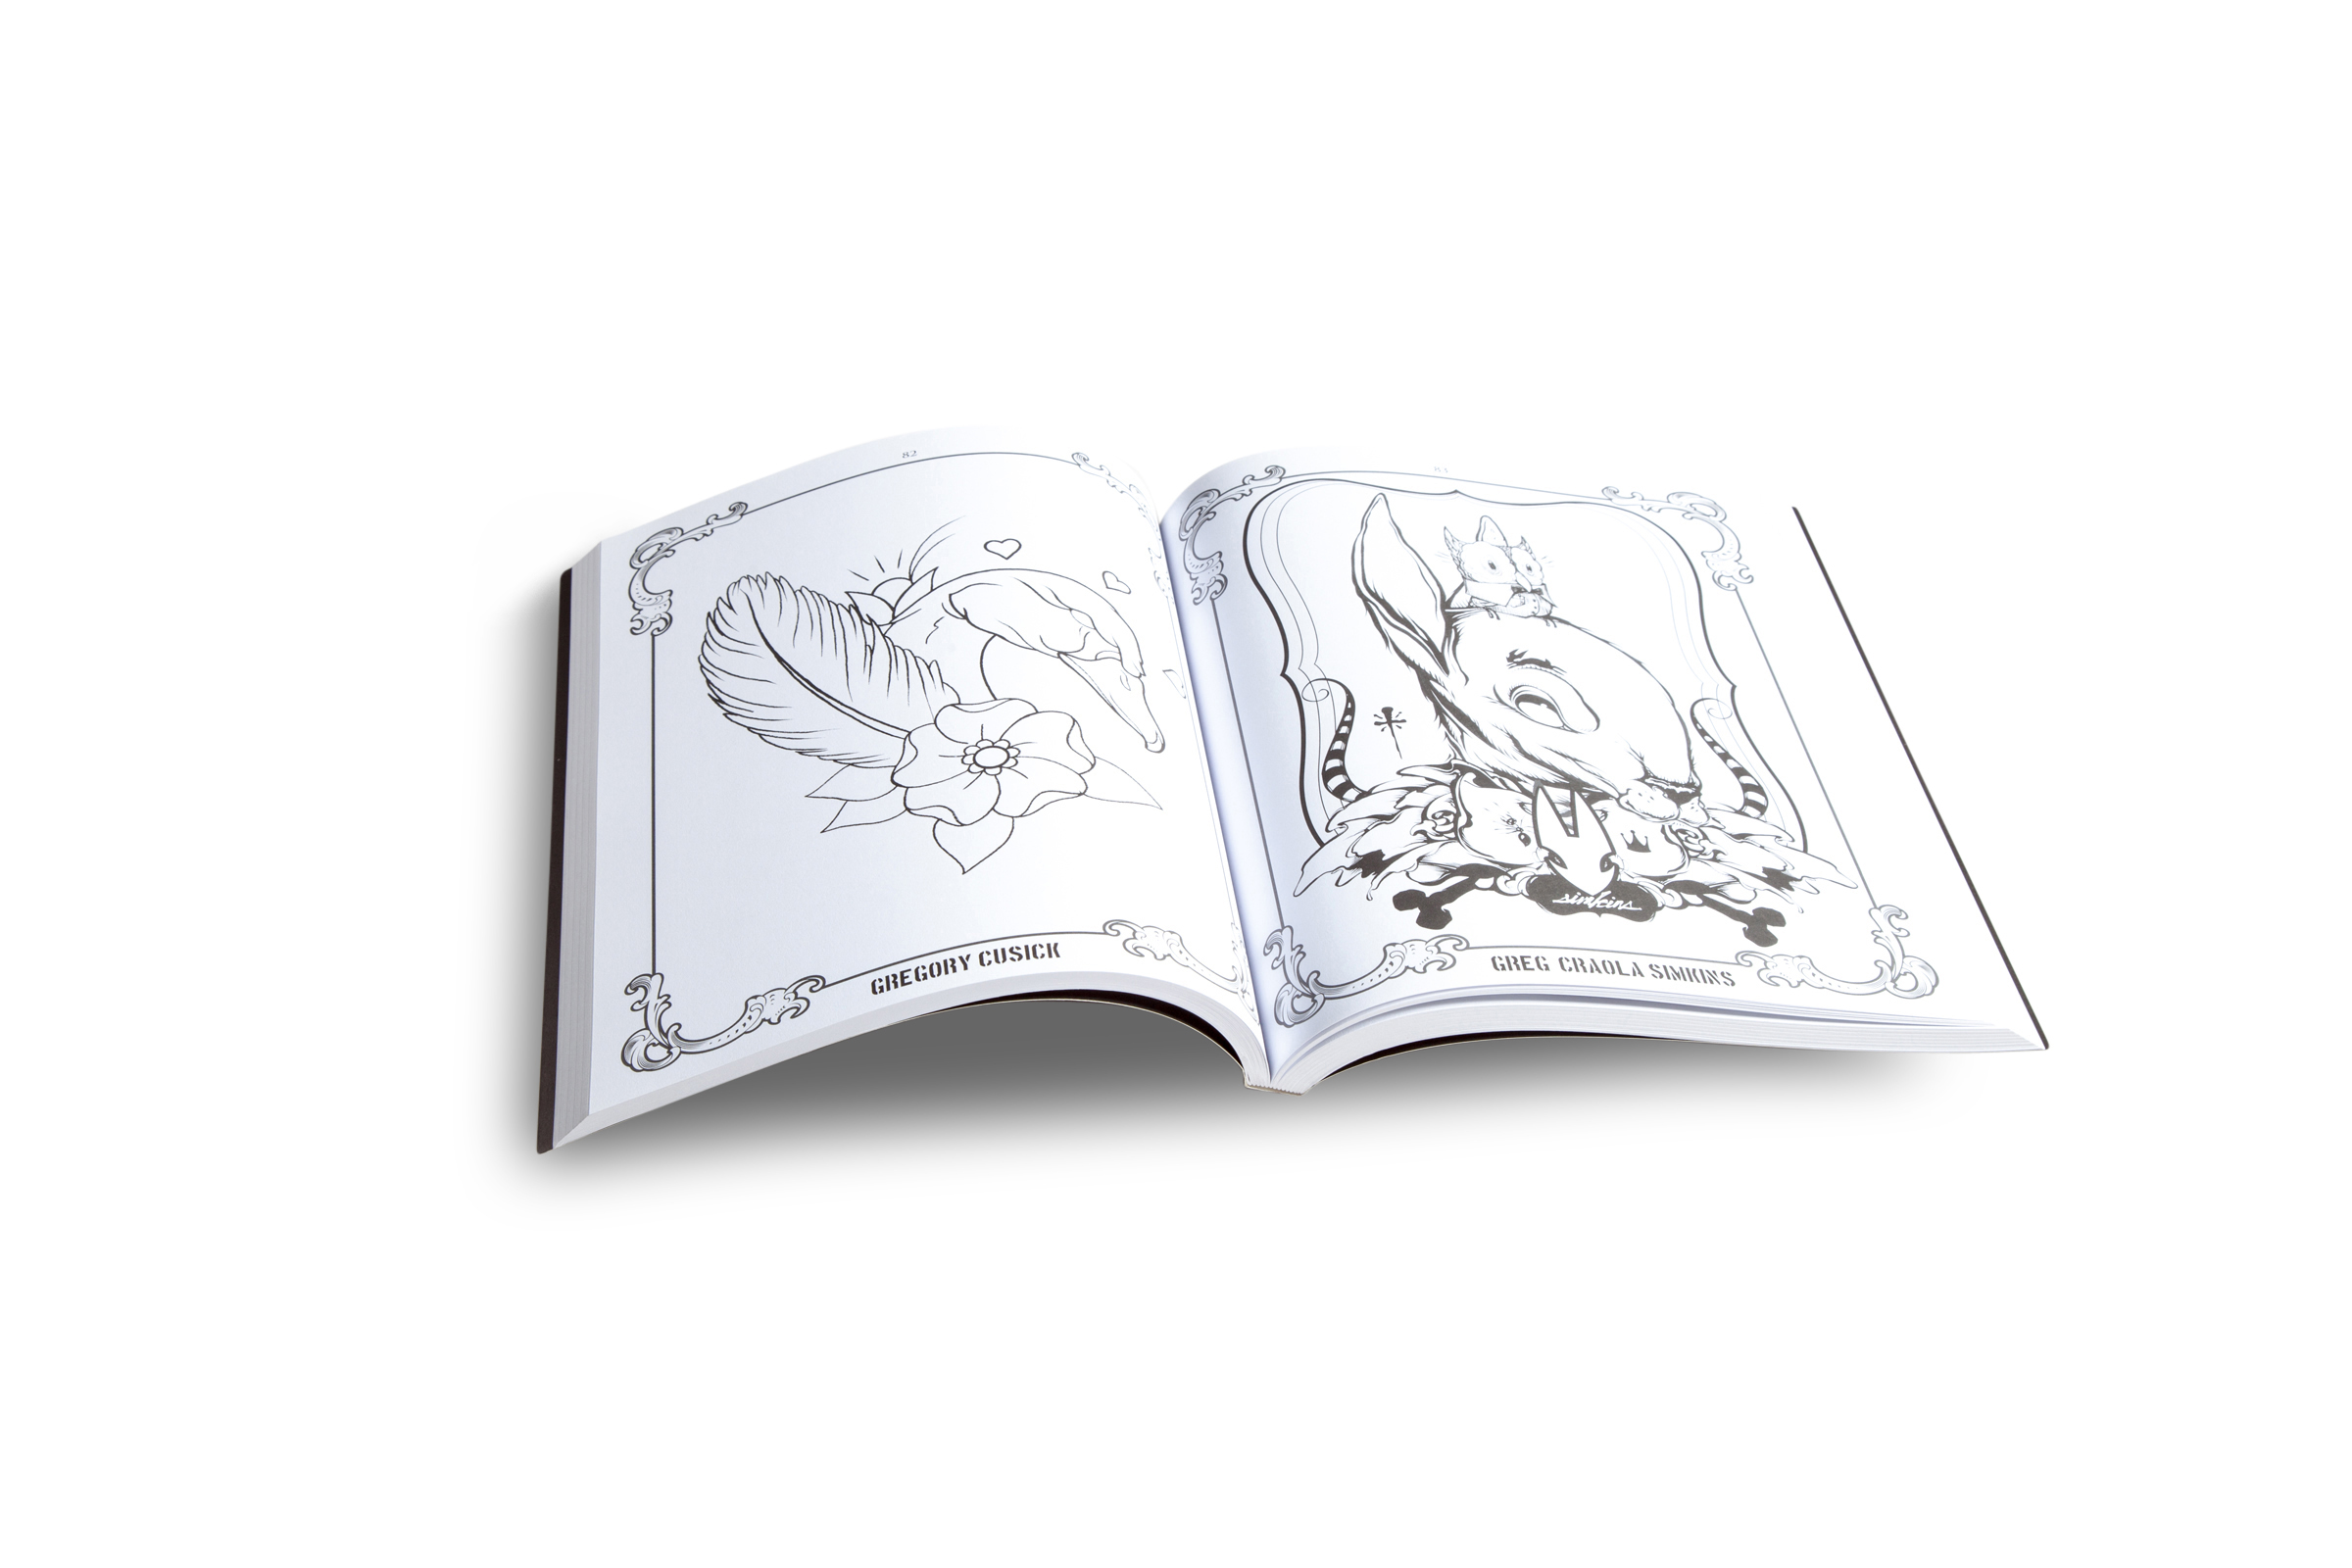 The coloring book project 2nd edition - The Coloring Book Project